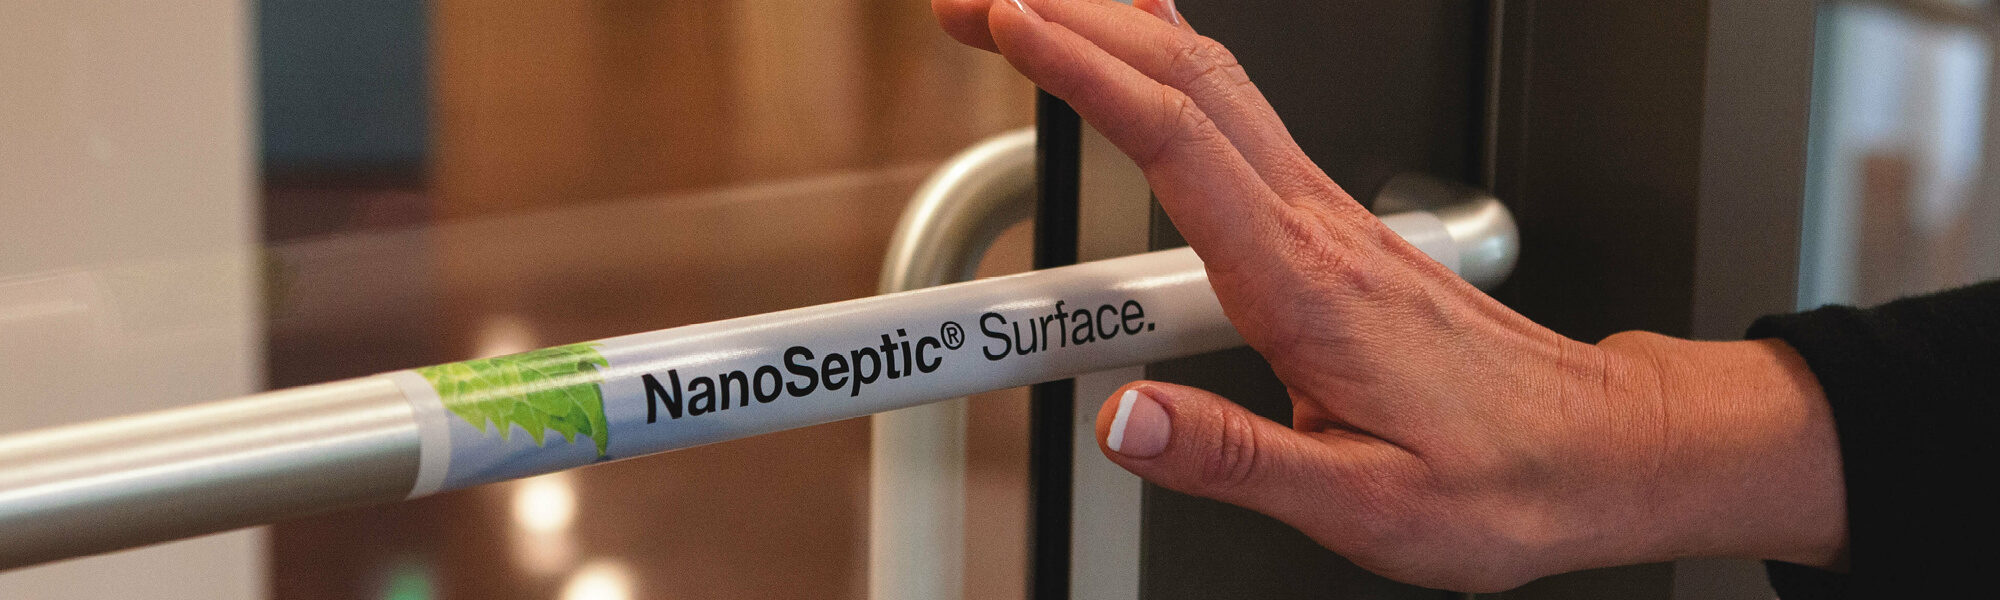 Nanoseptic | SOLUCARE Couvre-Planchers Labrosse